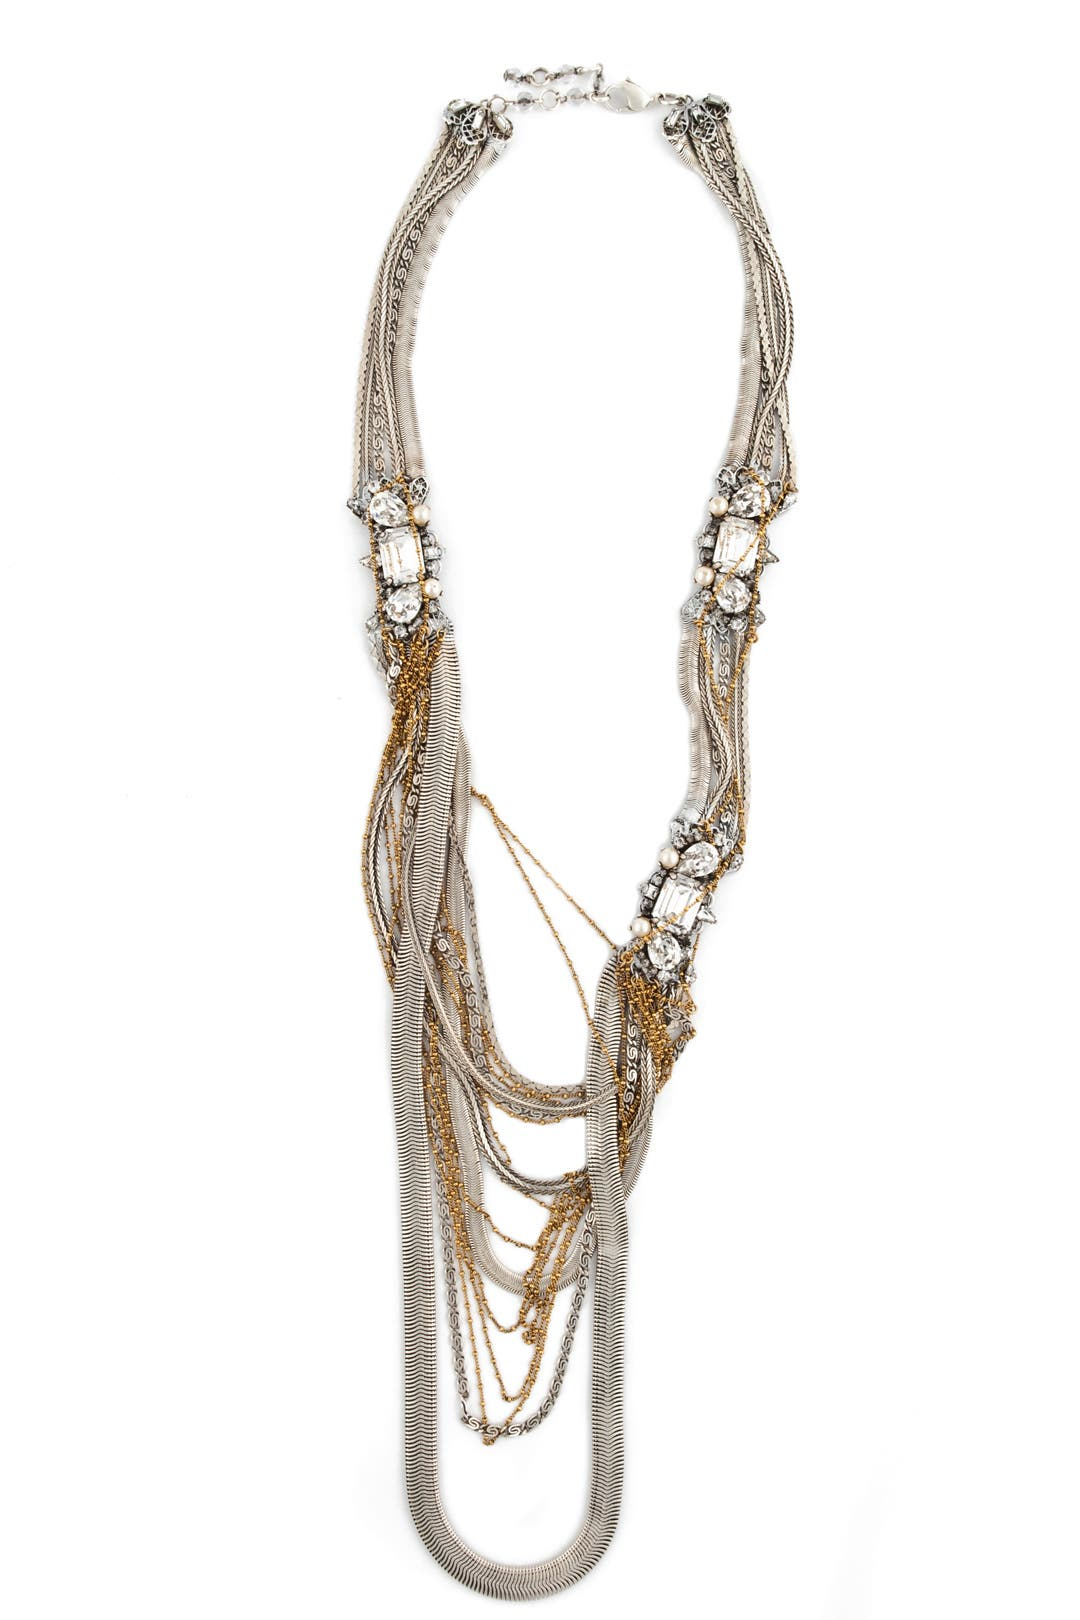 Glenda Necklace by Erickson Beamon